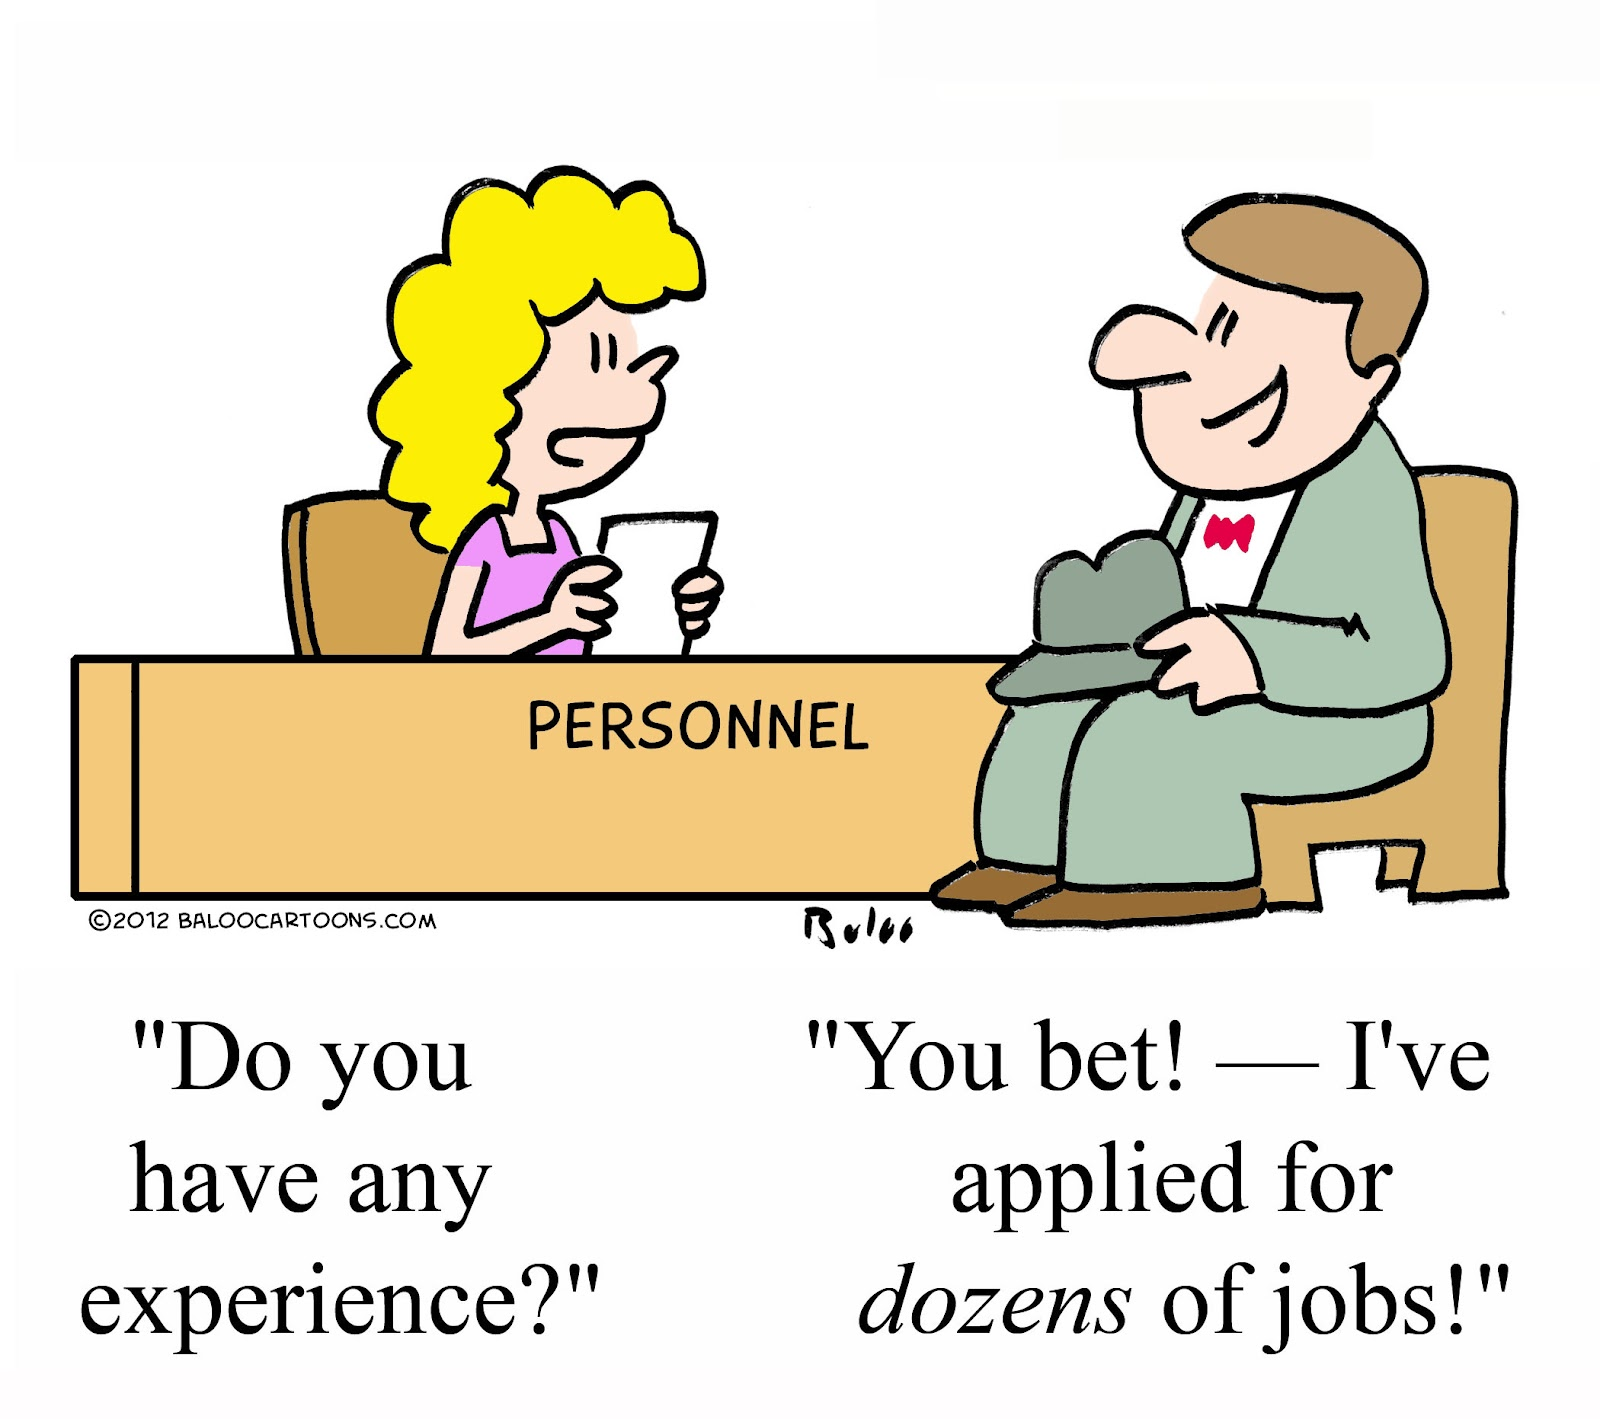 Cartoon - Applied for dozens of jobs